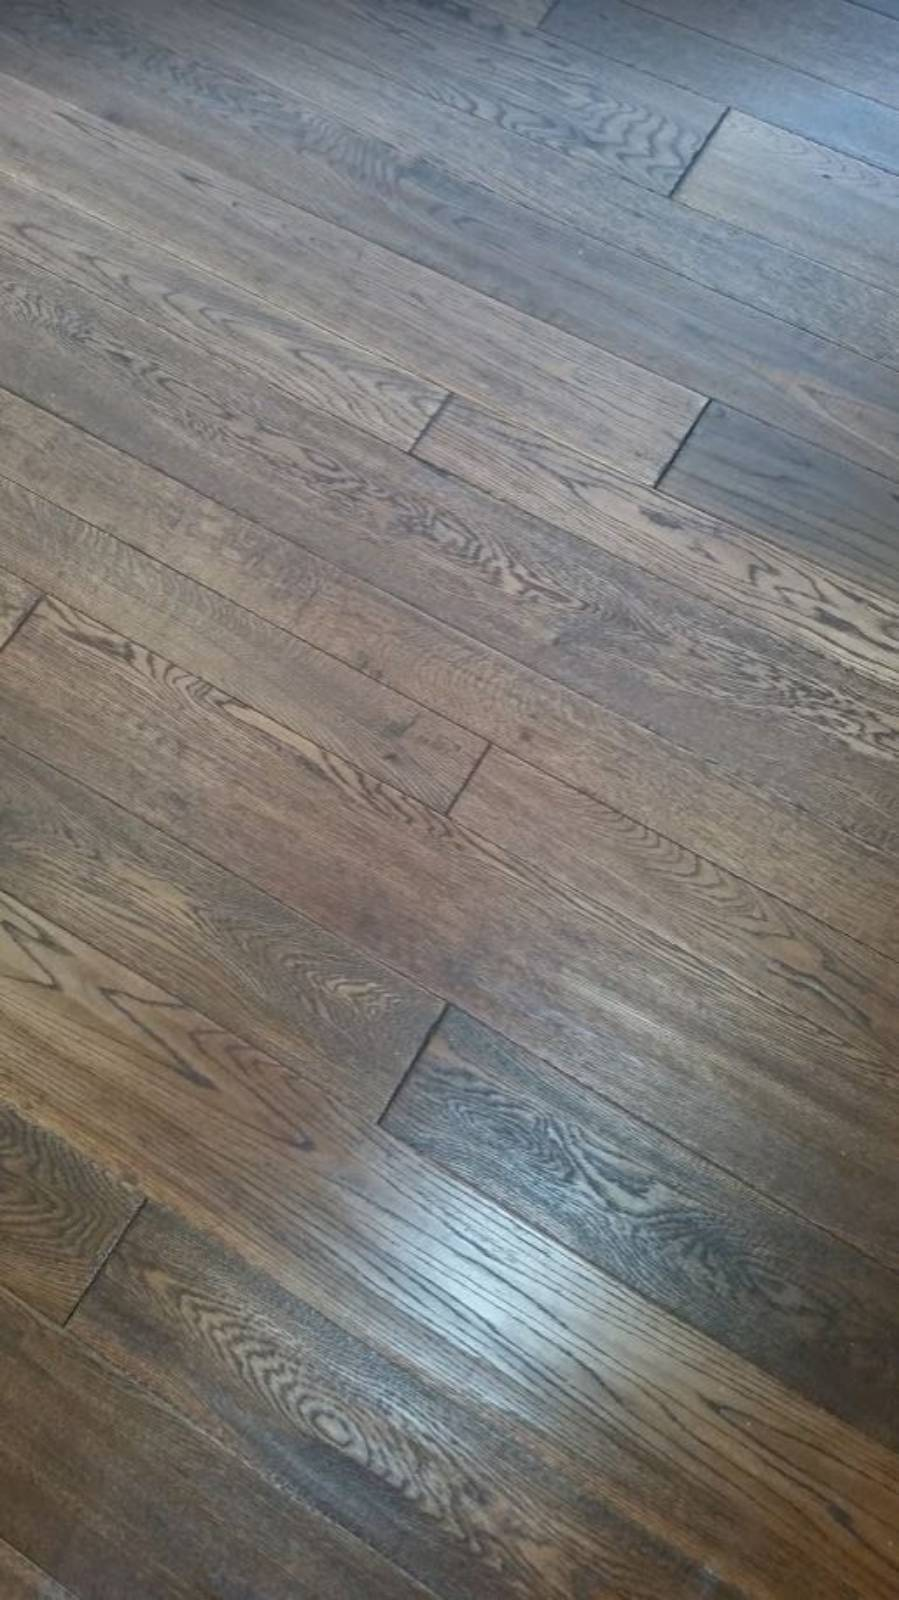 What is this timber floor?